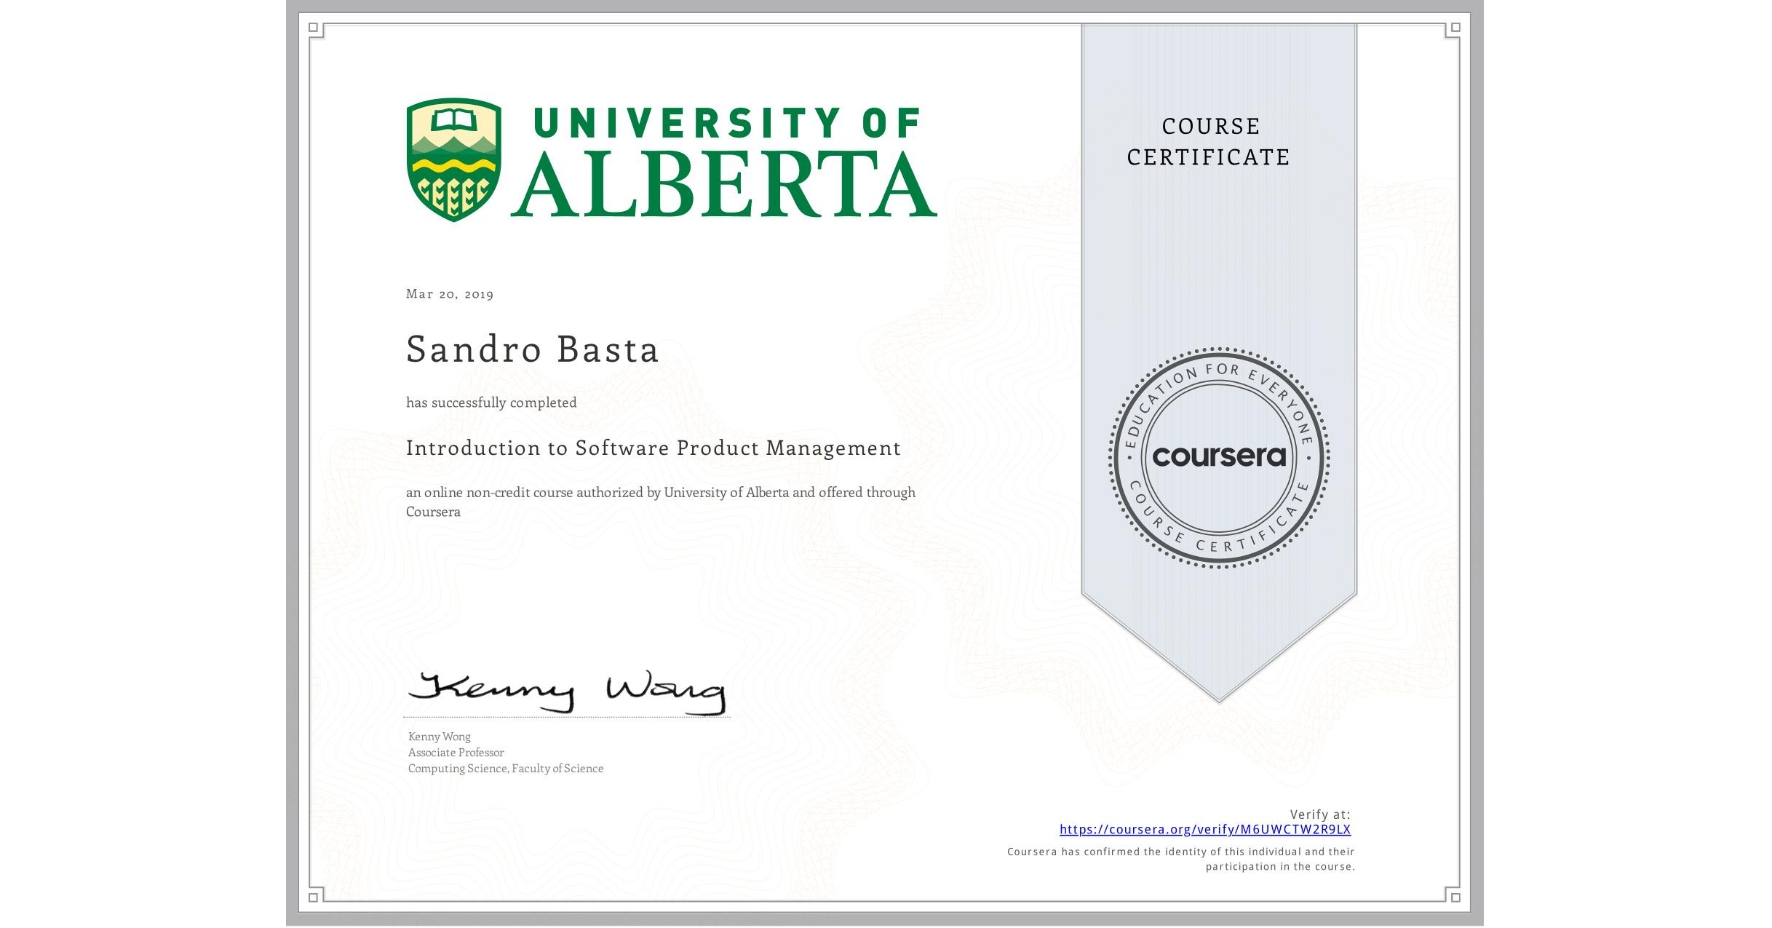 View certificate for Sandro Basta, Introduction to Software Product Management, an online non-credit course authorized by University of Alberta and offered through Coursera